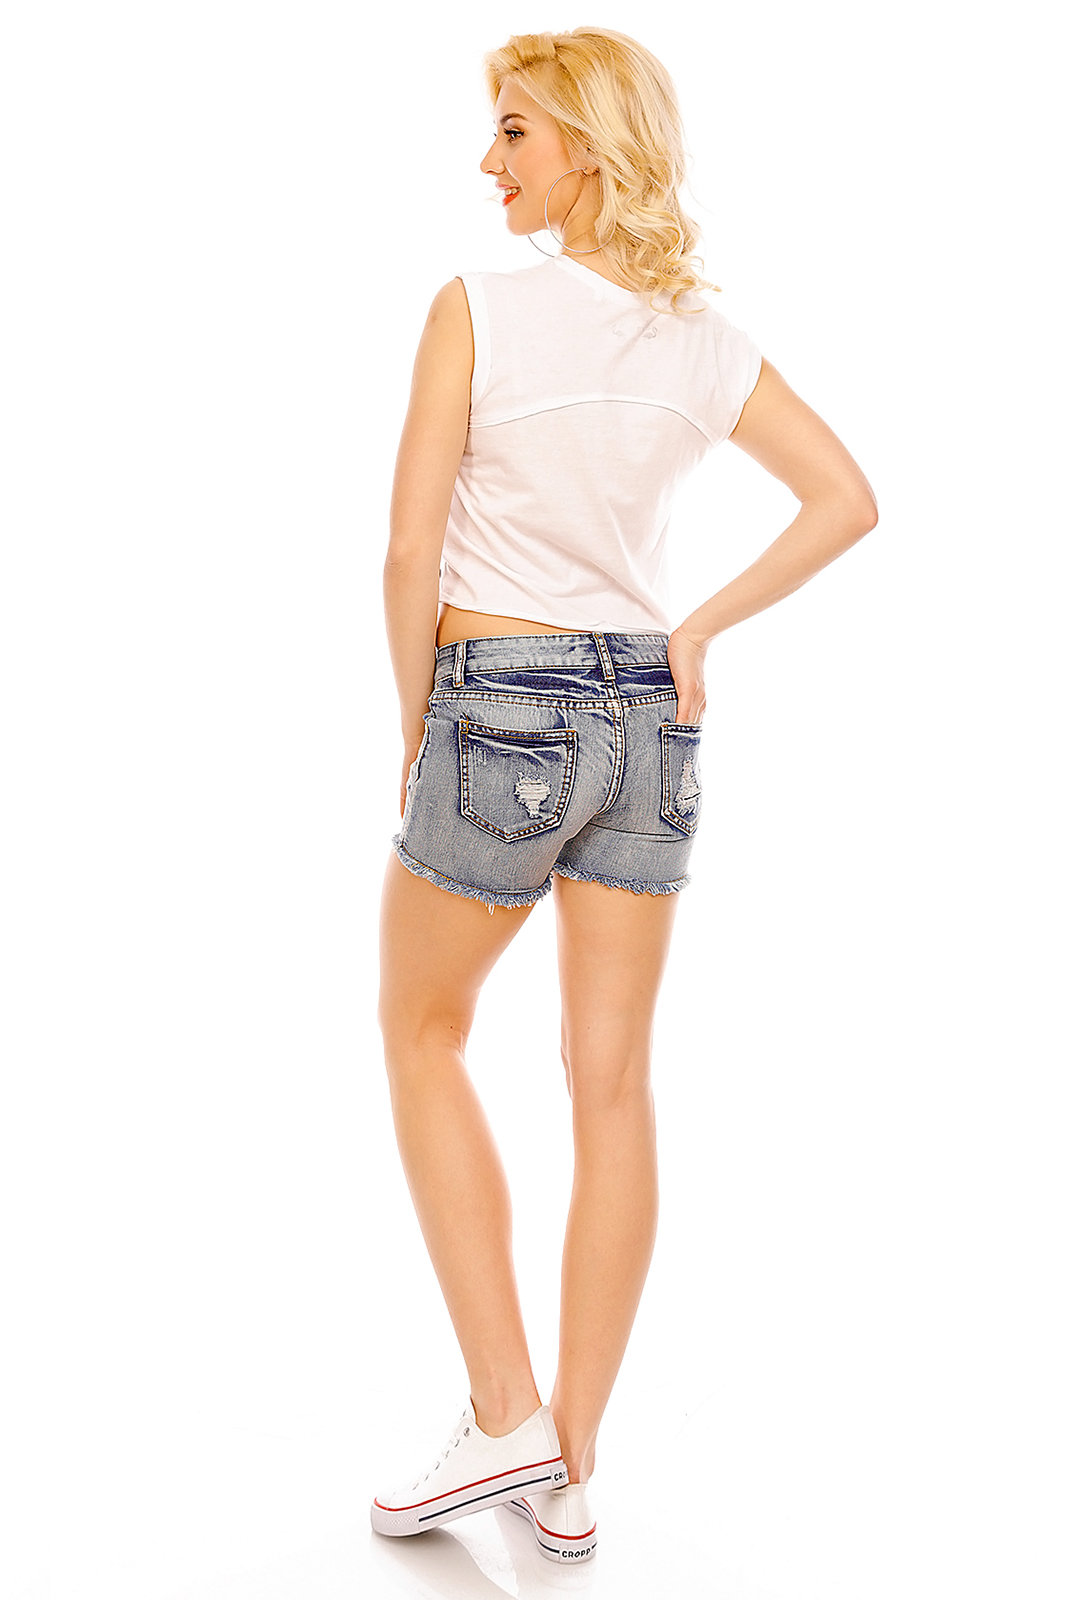 Damen Jeans Hose Skinny Shorts Denim Löcher Destroyed Ripped Pants BS-302 Blau